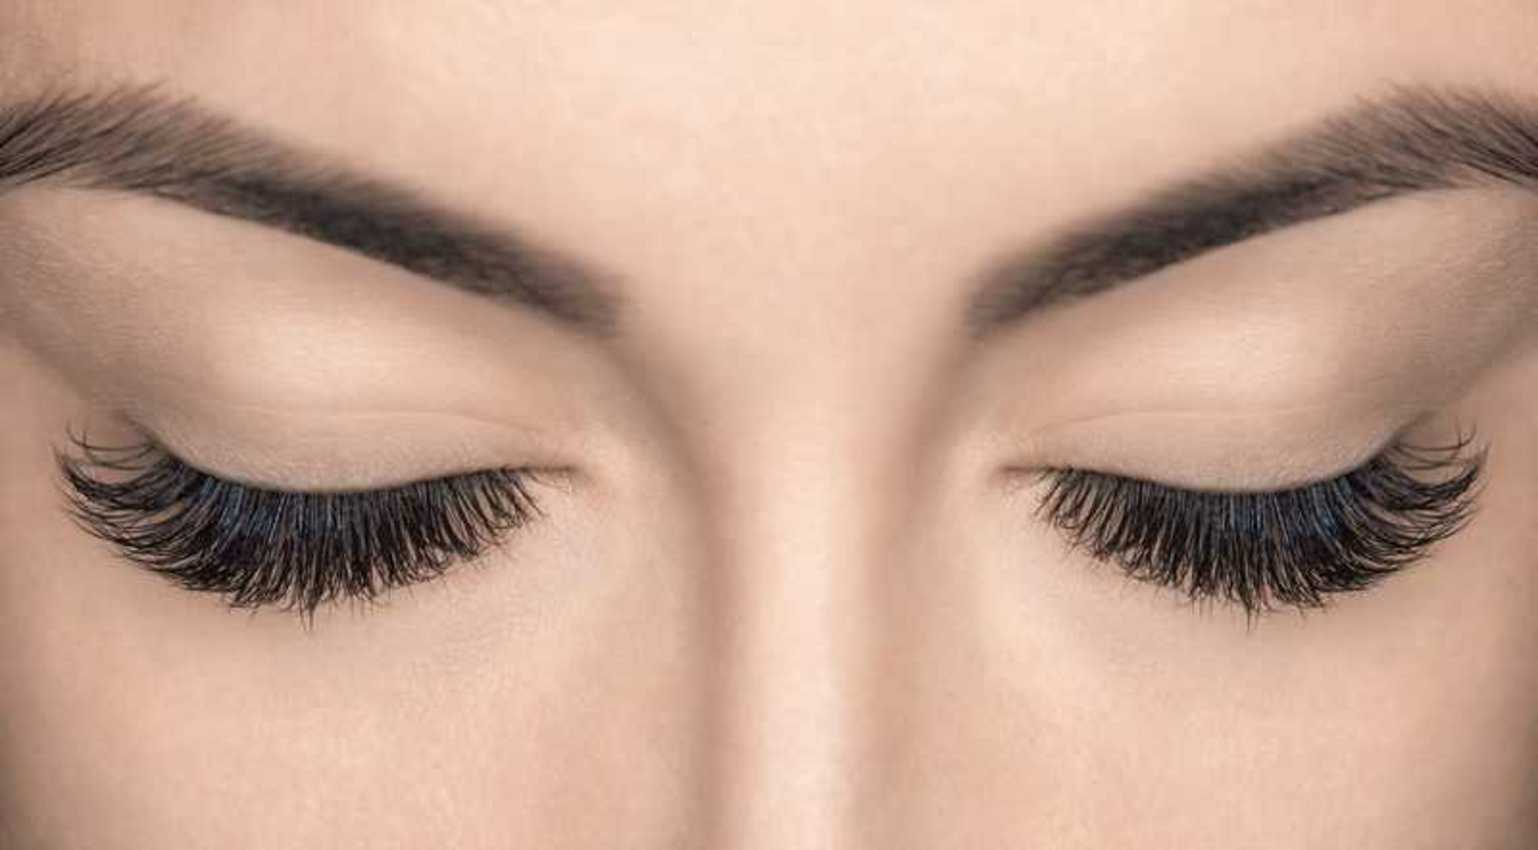 Are Eyelash Extensions Safe?